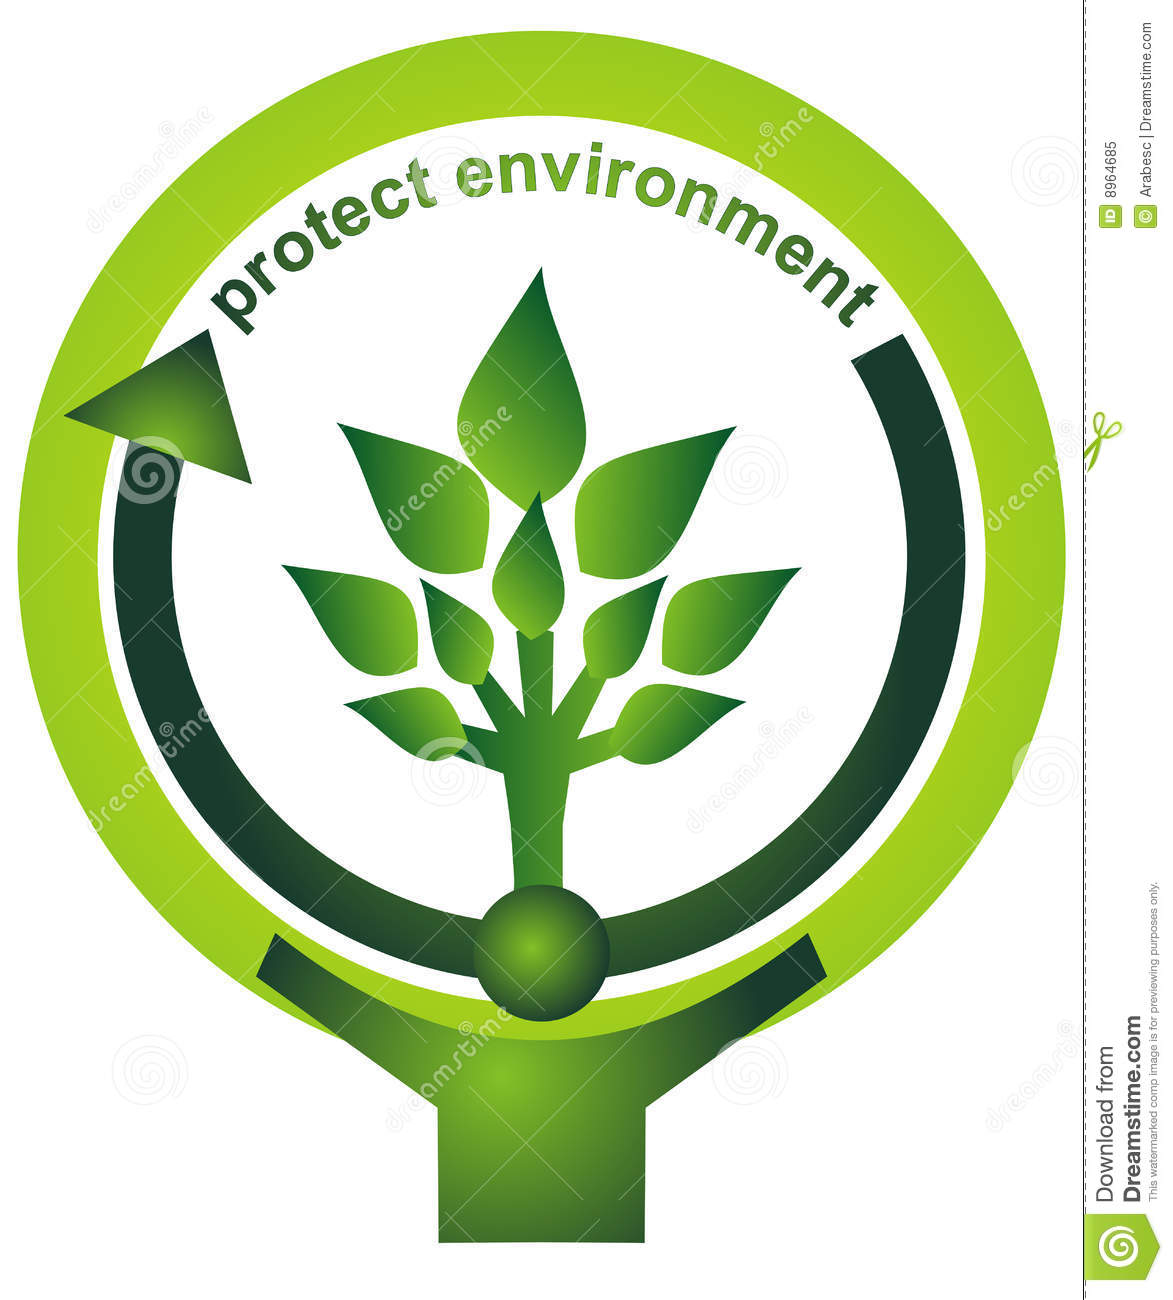 Environmental pictures clip art - ClipartFest graphic black and white